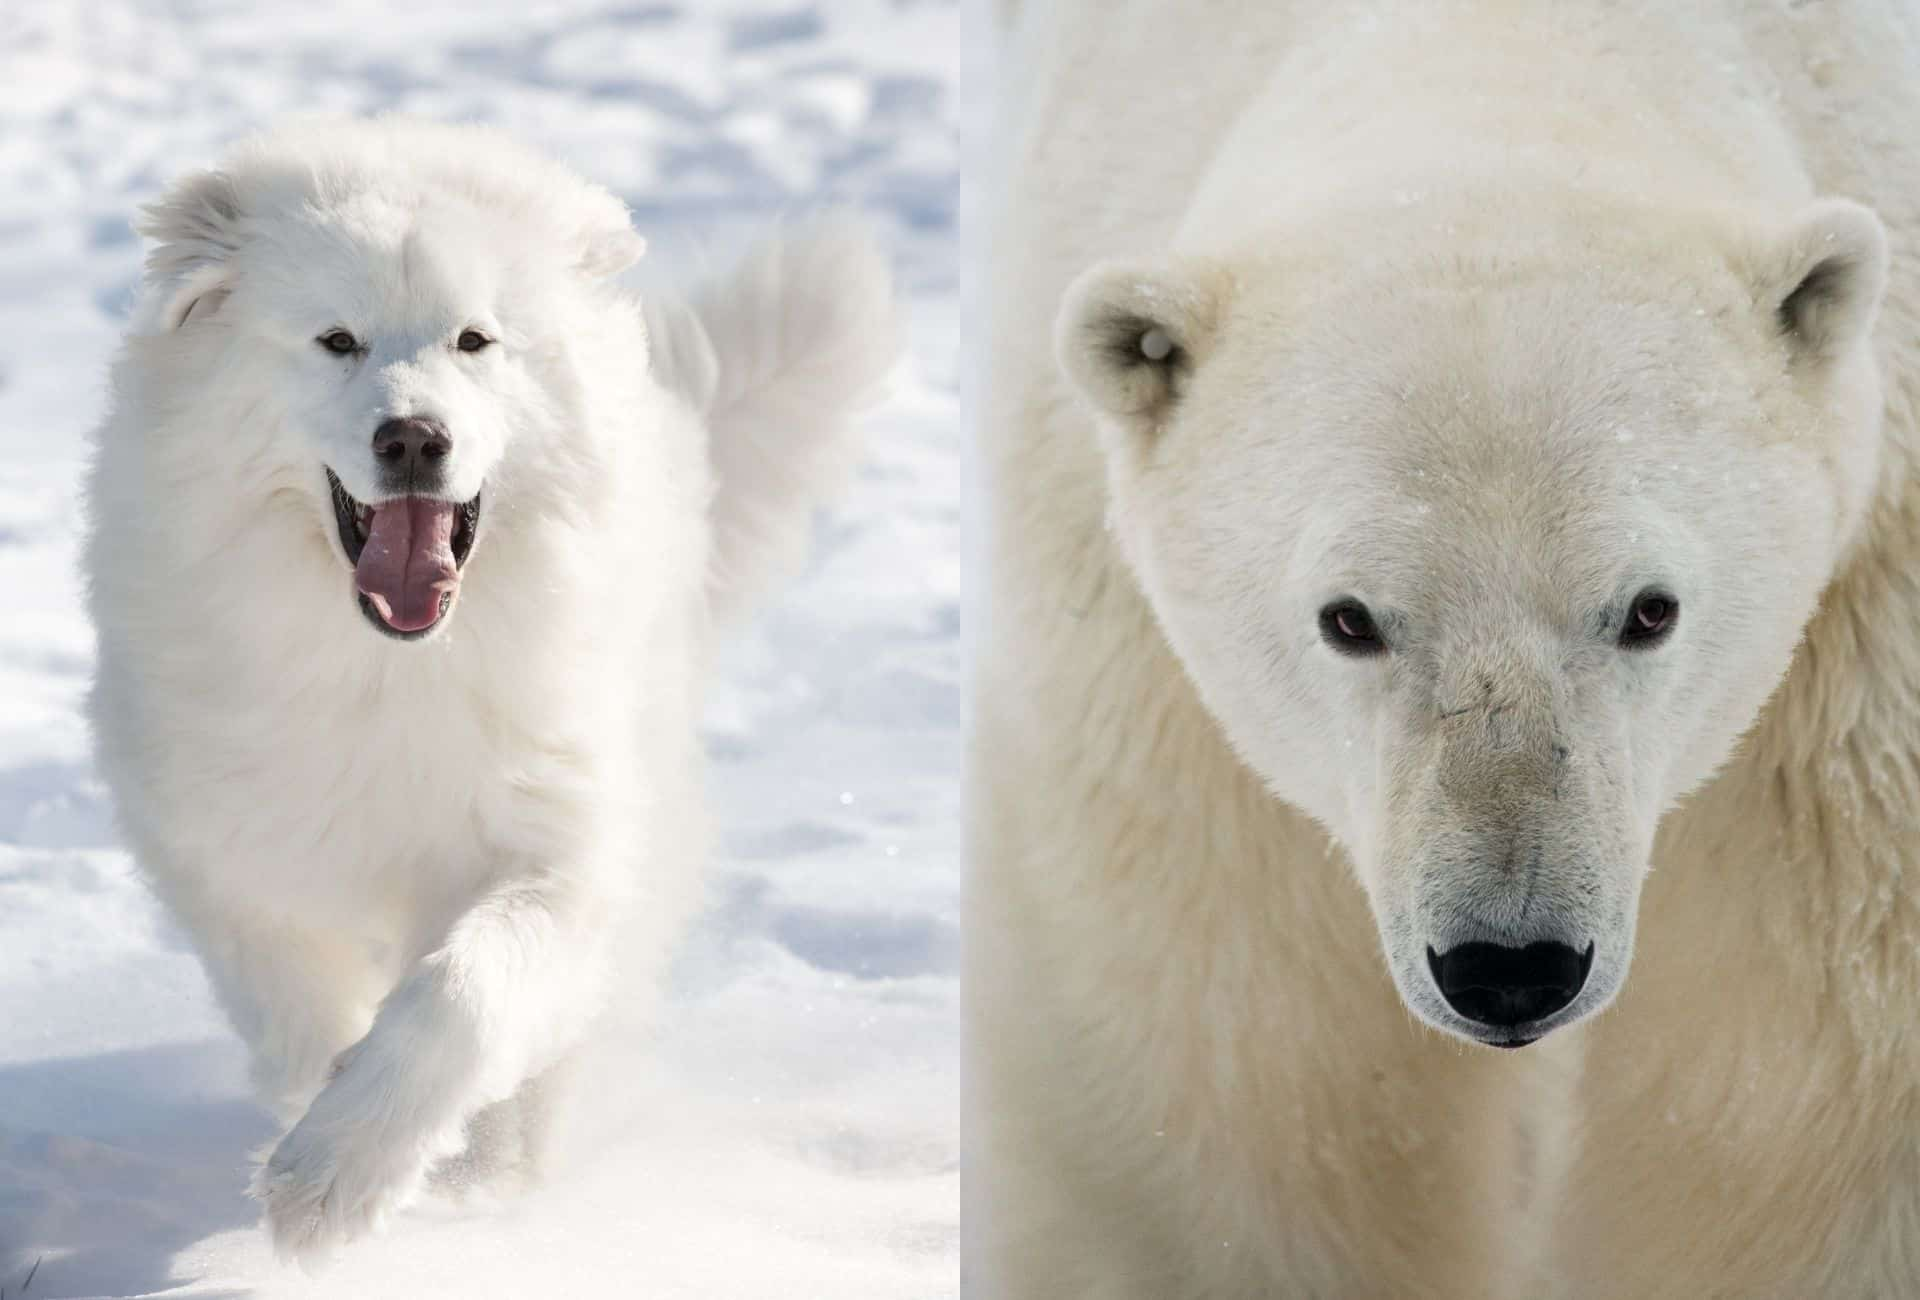 Great Pyrenees running in snow in comparison to the head of a Polar bear with the long snout and white coat.